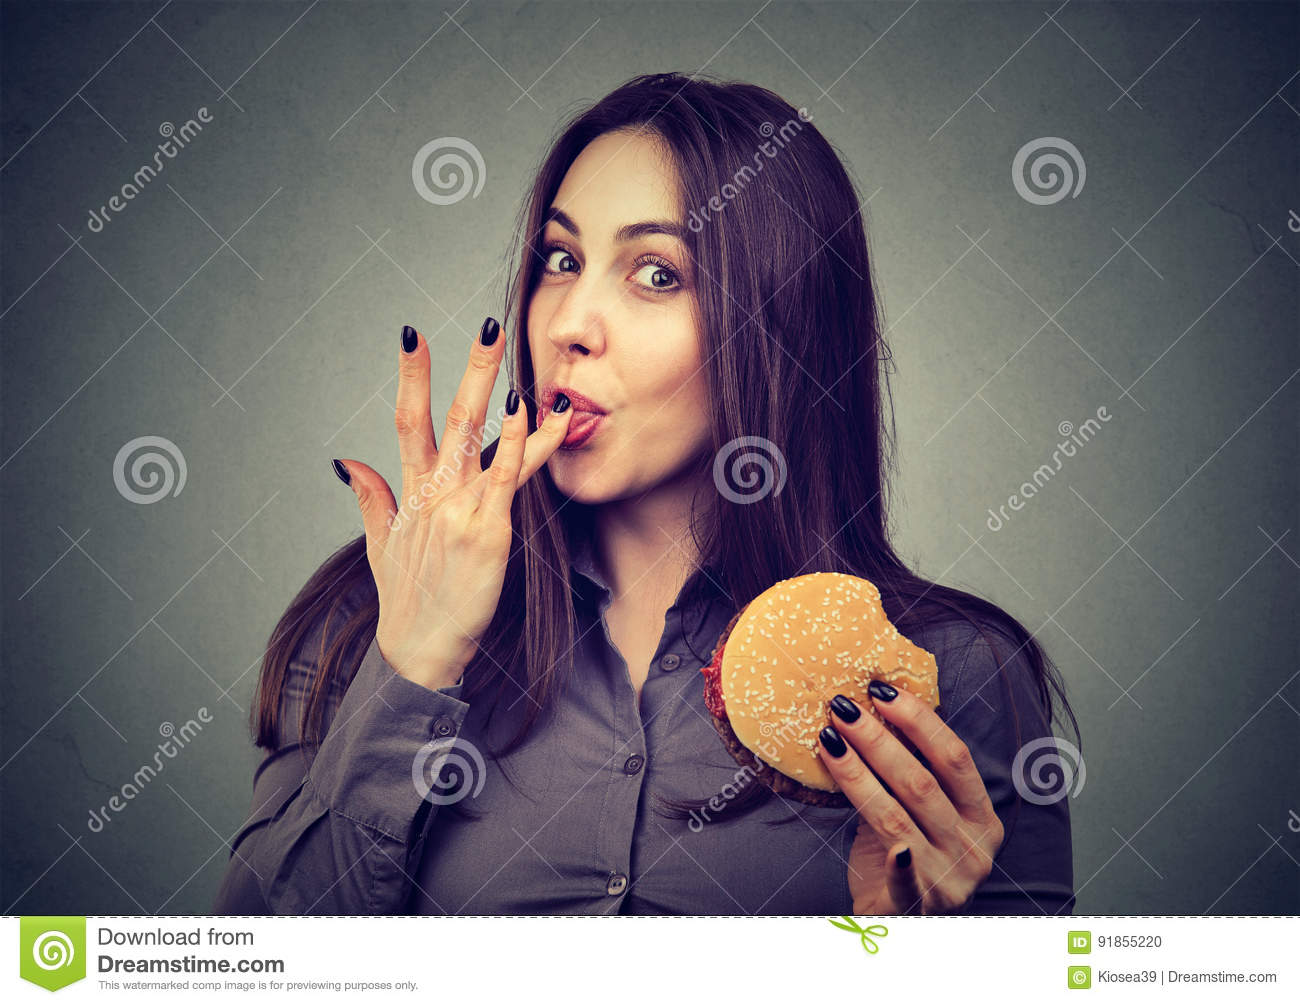 Fast food is my favorite. Woman eating a hamburger enjoying the taste